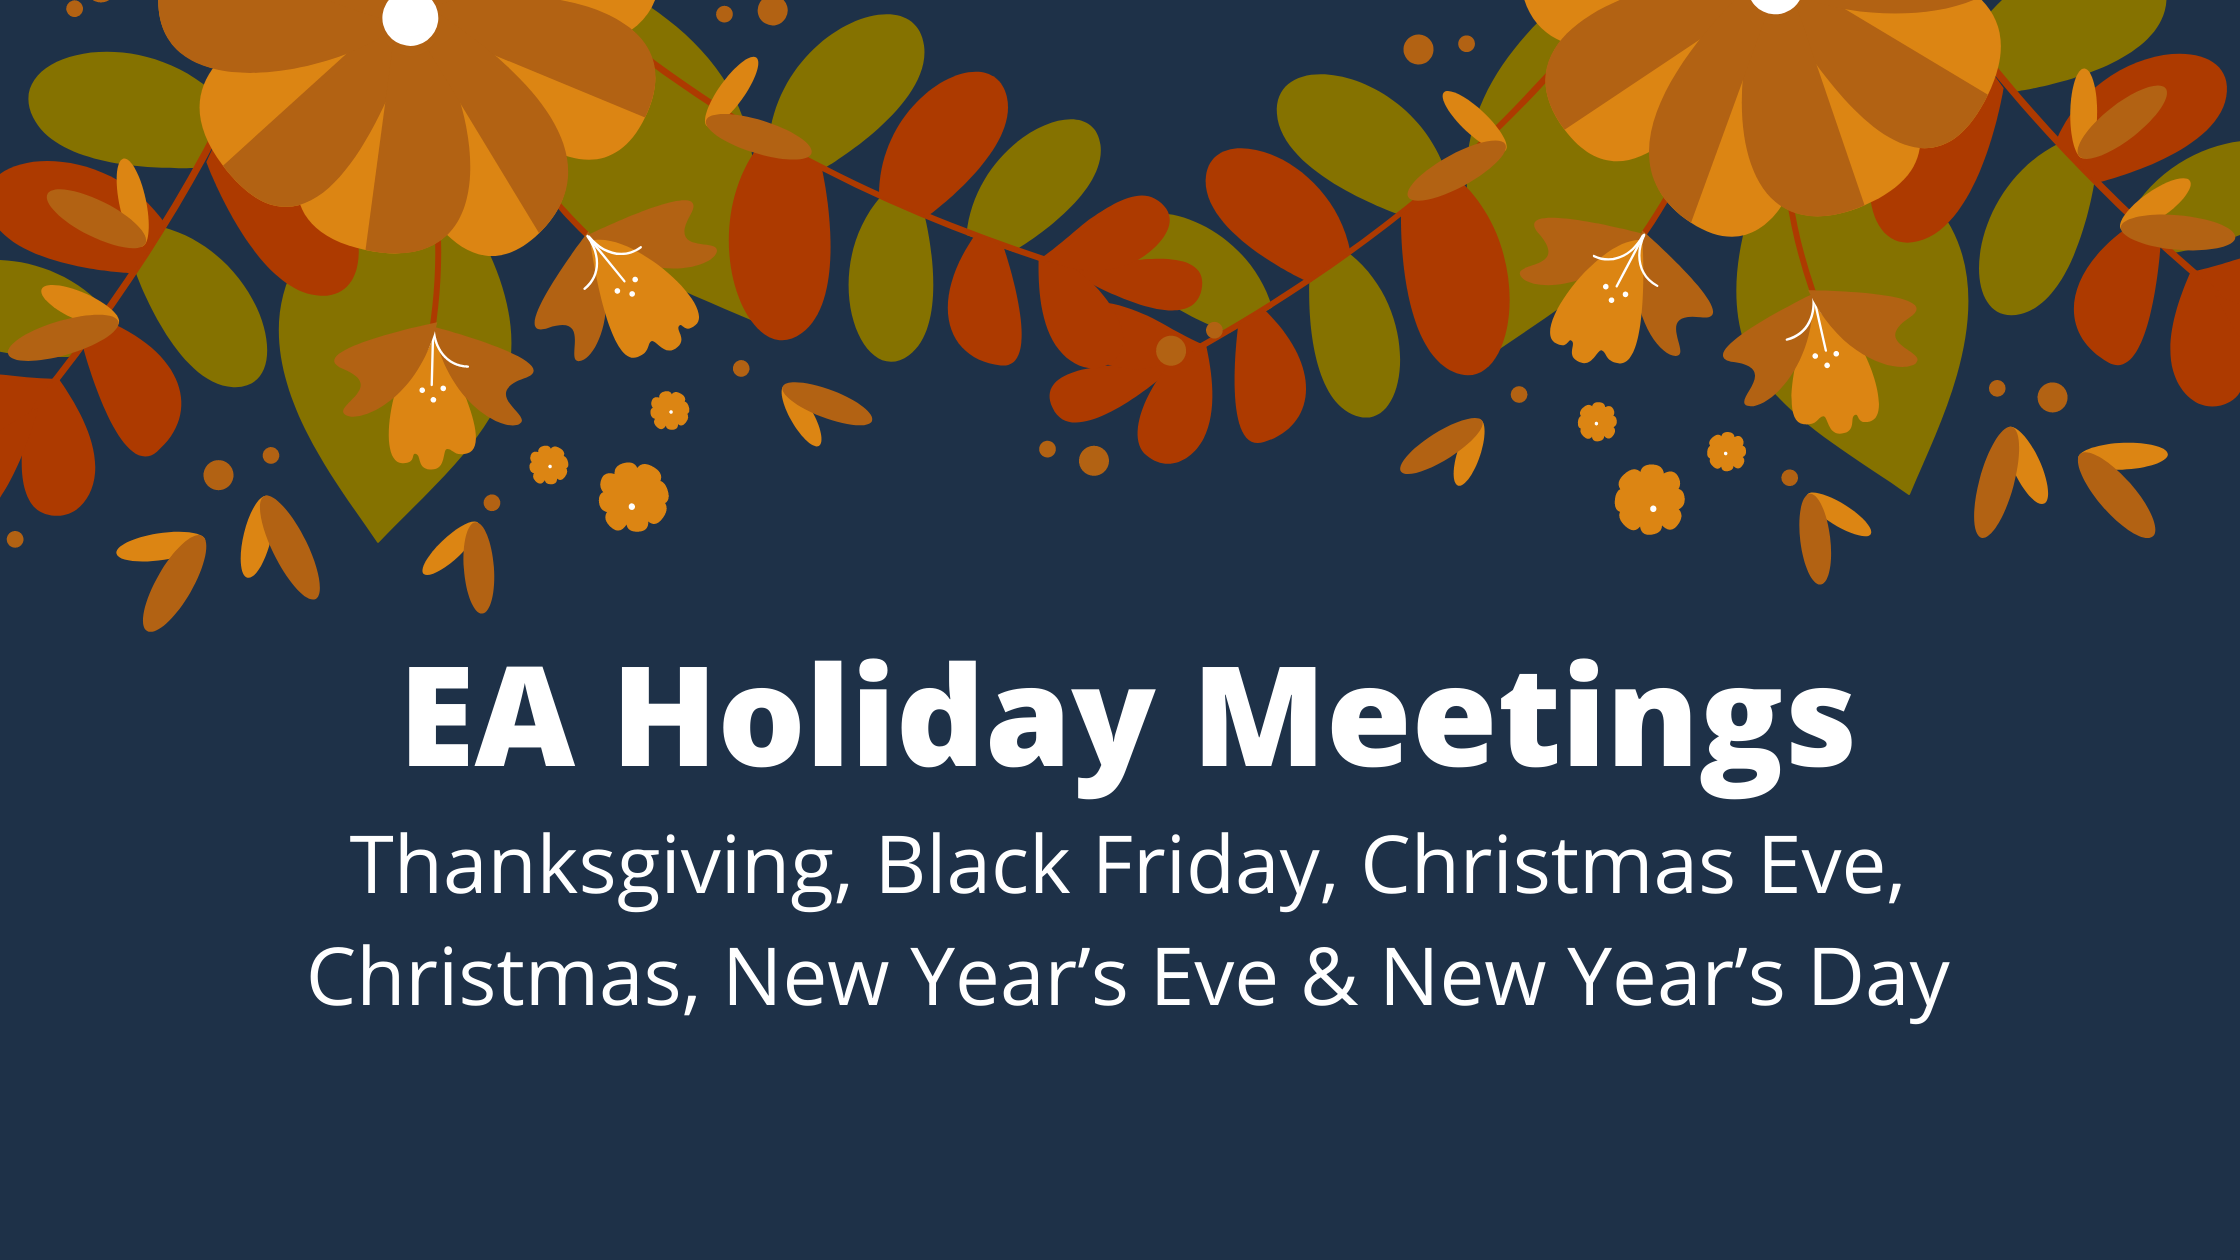 New Year's Eve EA Telephone & Online Meetings